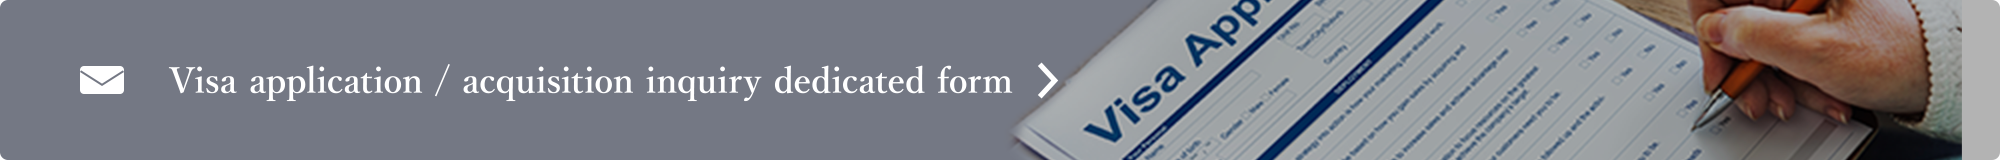 Visa application / acquisition inquiry dedicated form